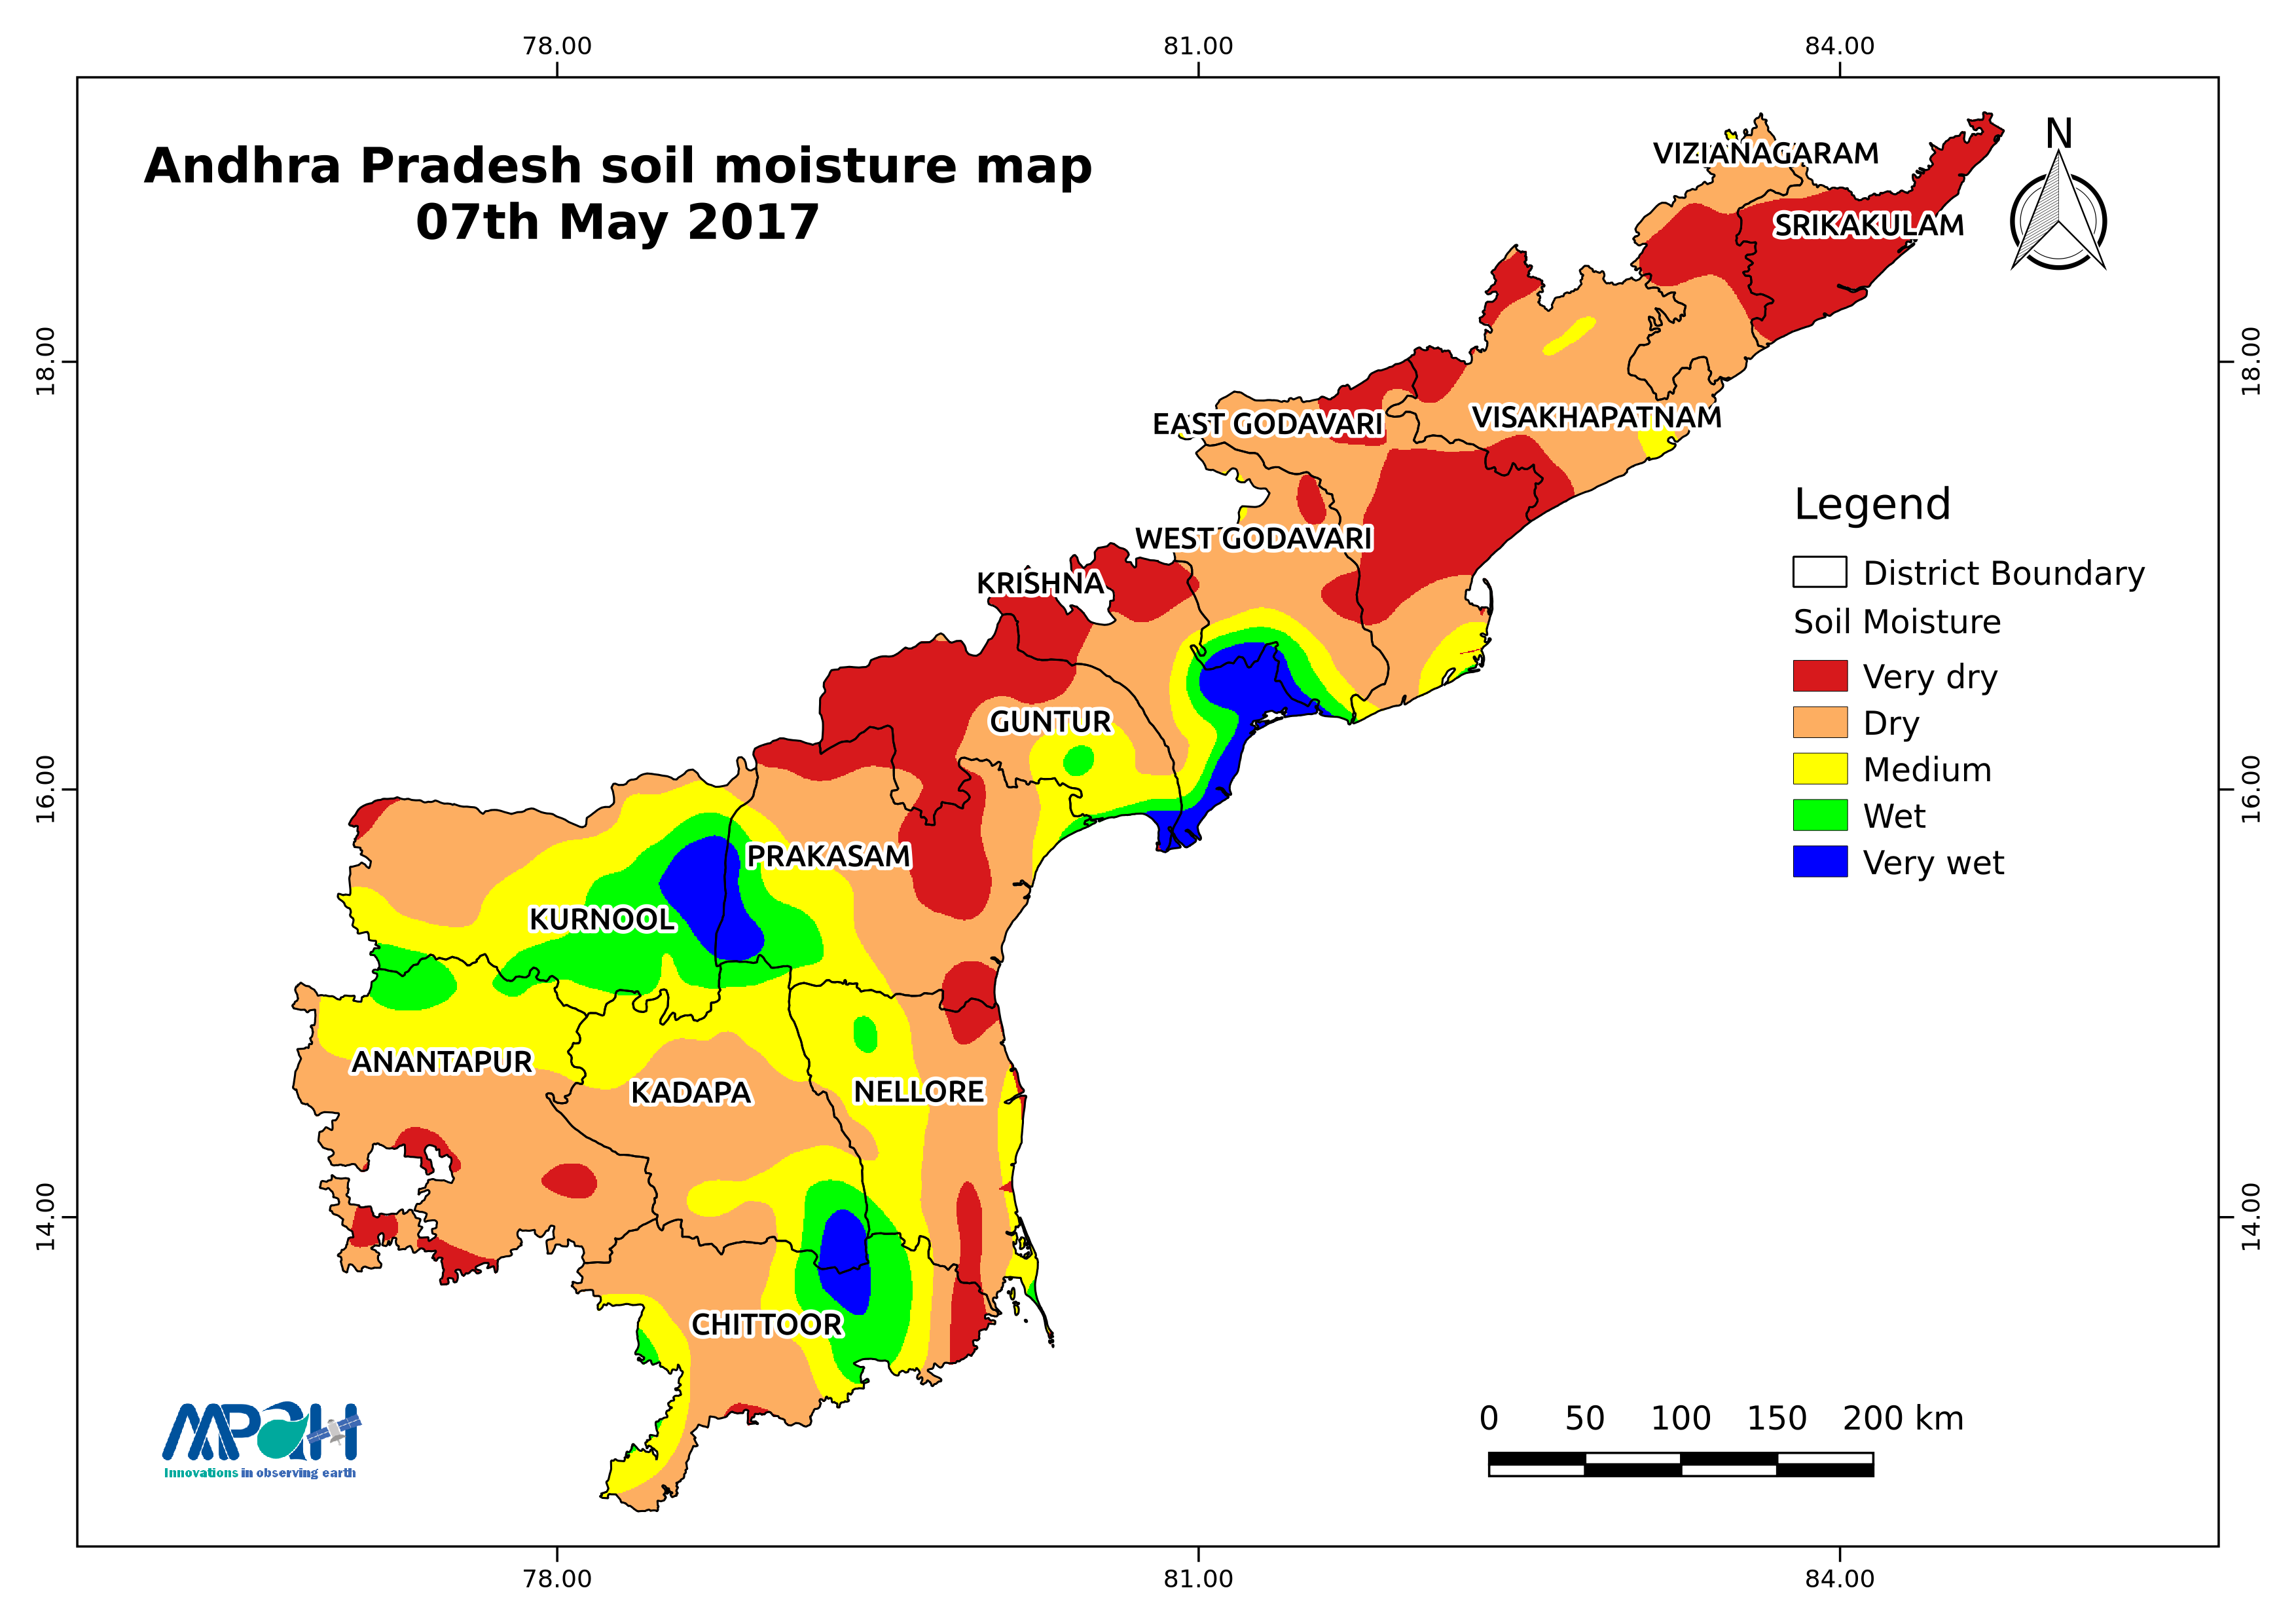 Soil Moisture Map For The State Of Andhra Pradesh Aapah - Us soil moisture map